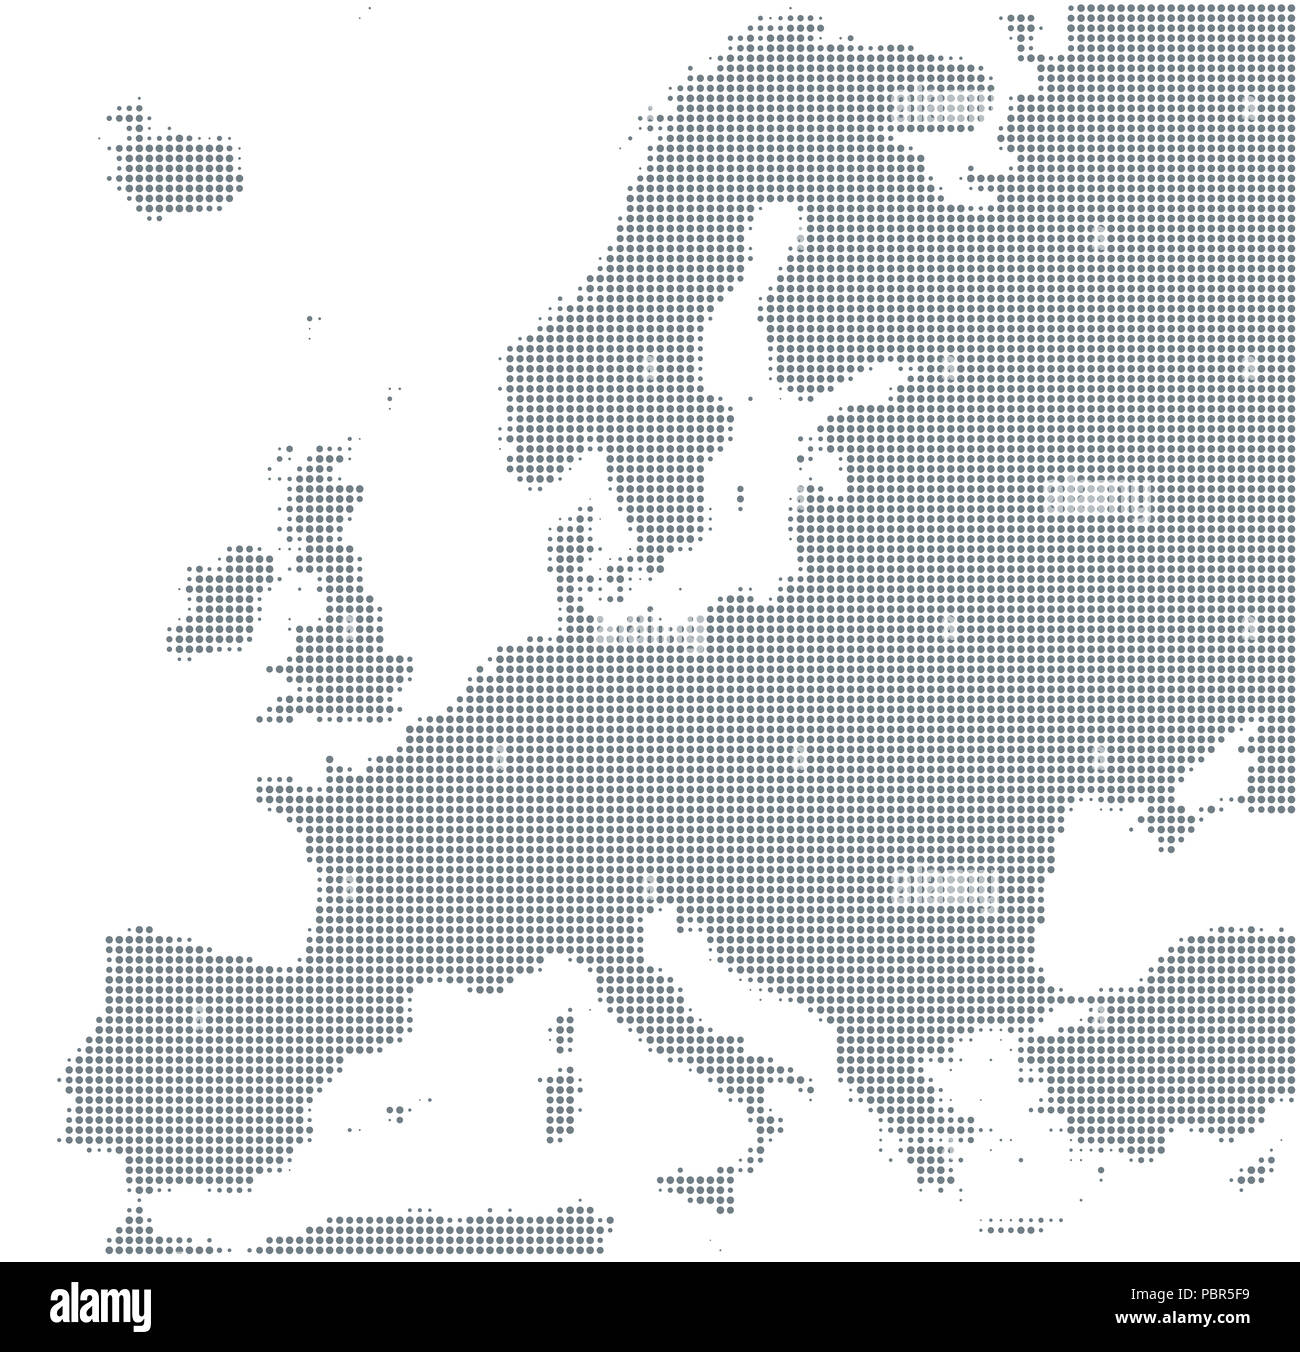 Silhouette of Europe. Gray halftone dots, varying in size and spacing. Map of Europe. Dotted outline and surface under Robinson projection. - Stock Image